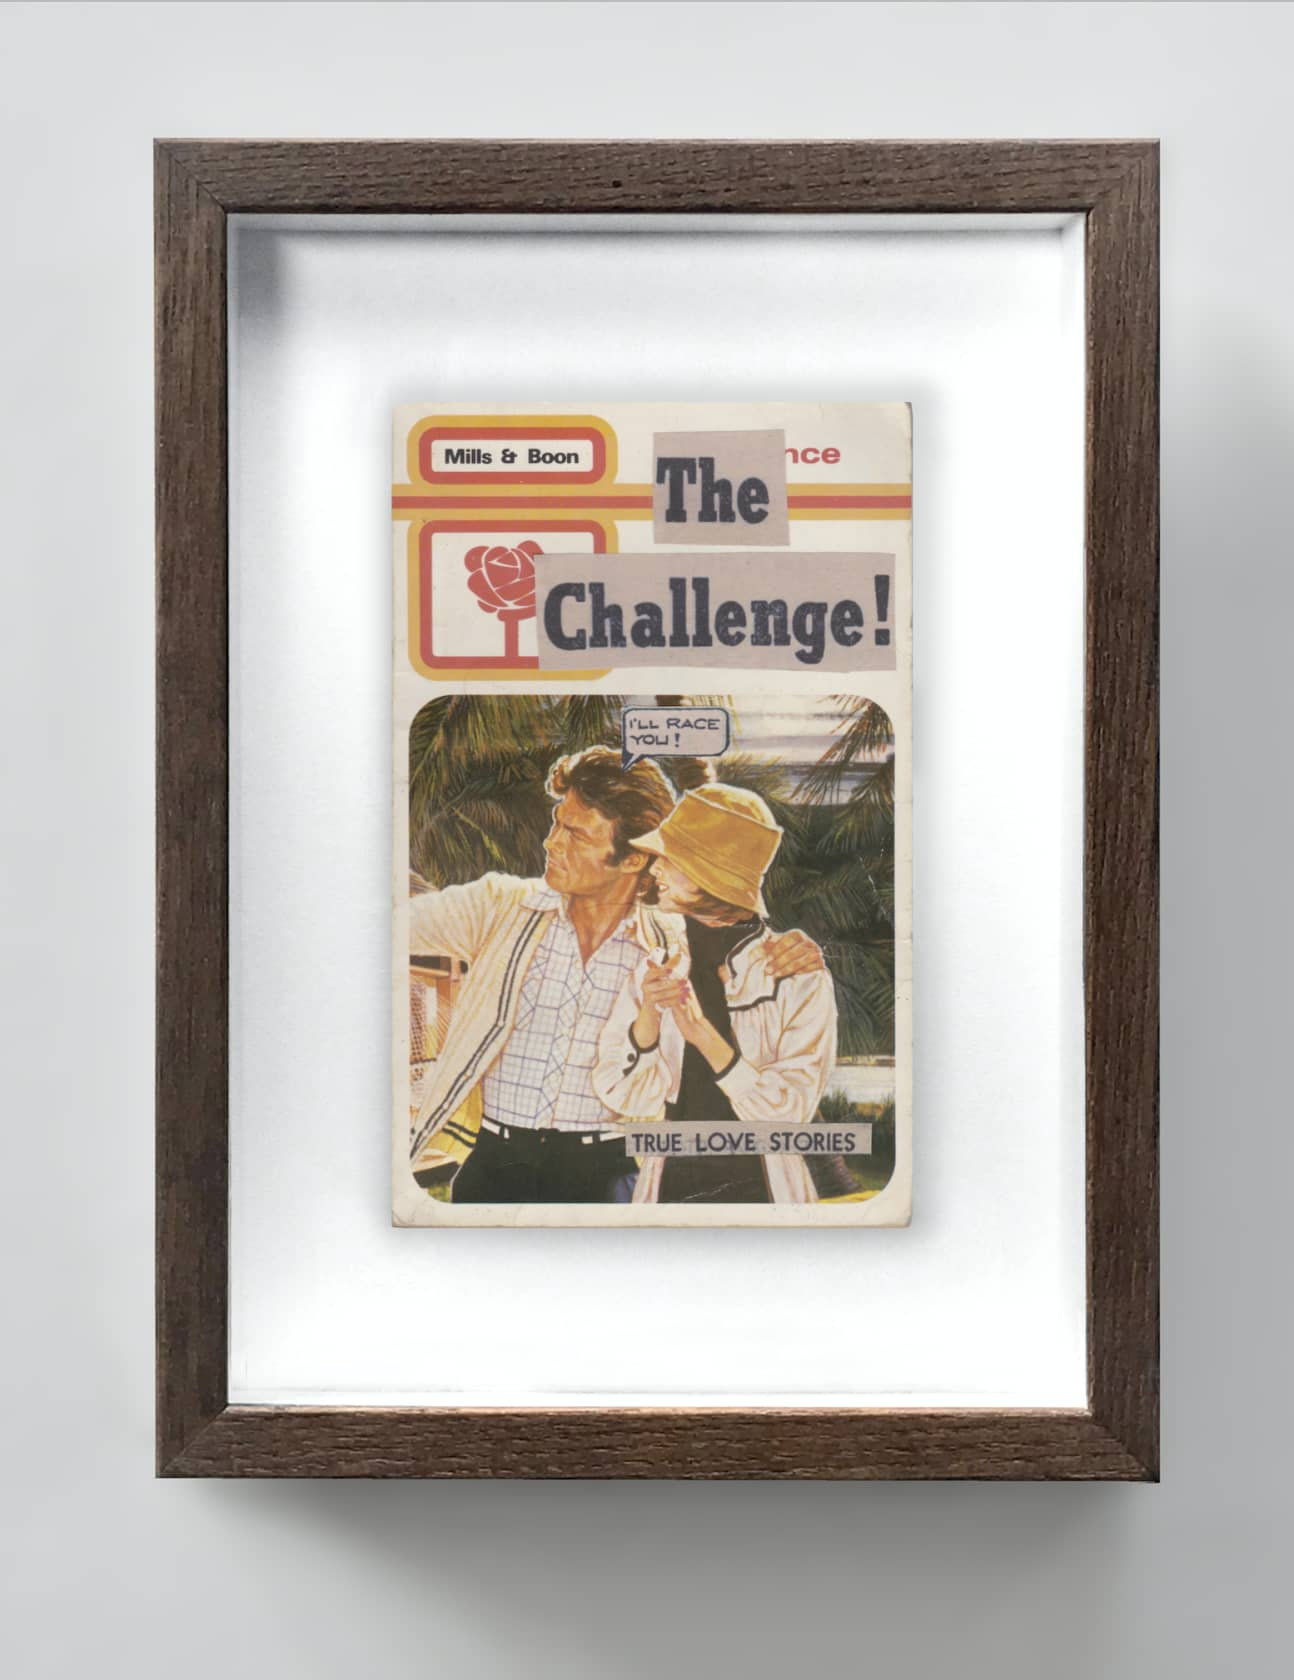 the connor brothers The Challenge Collage on vintage paperback book